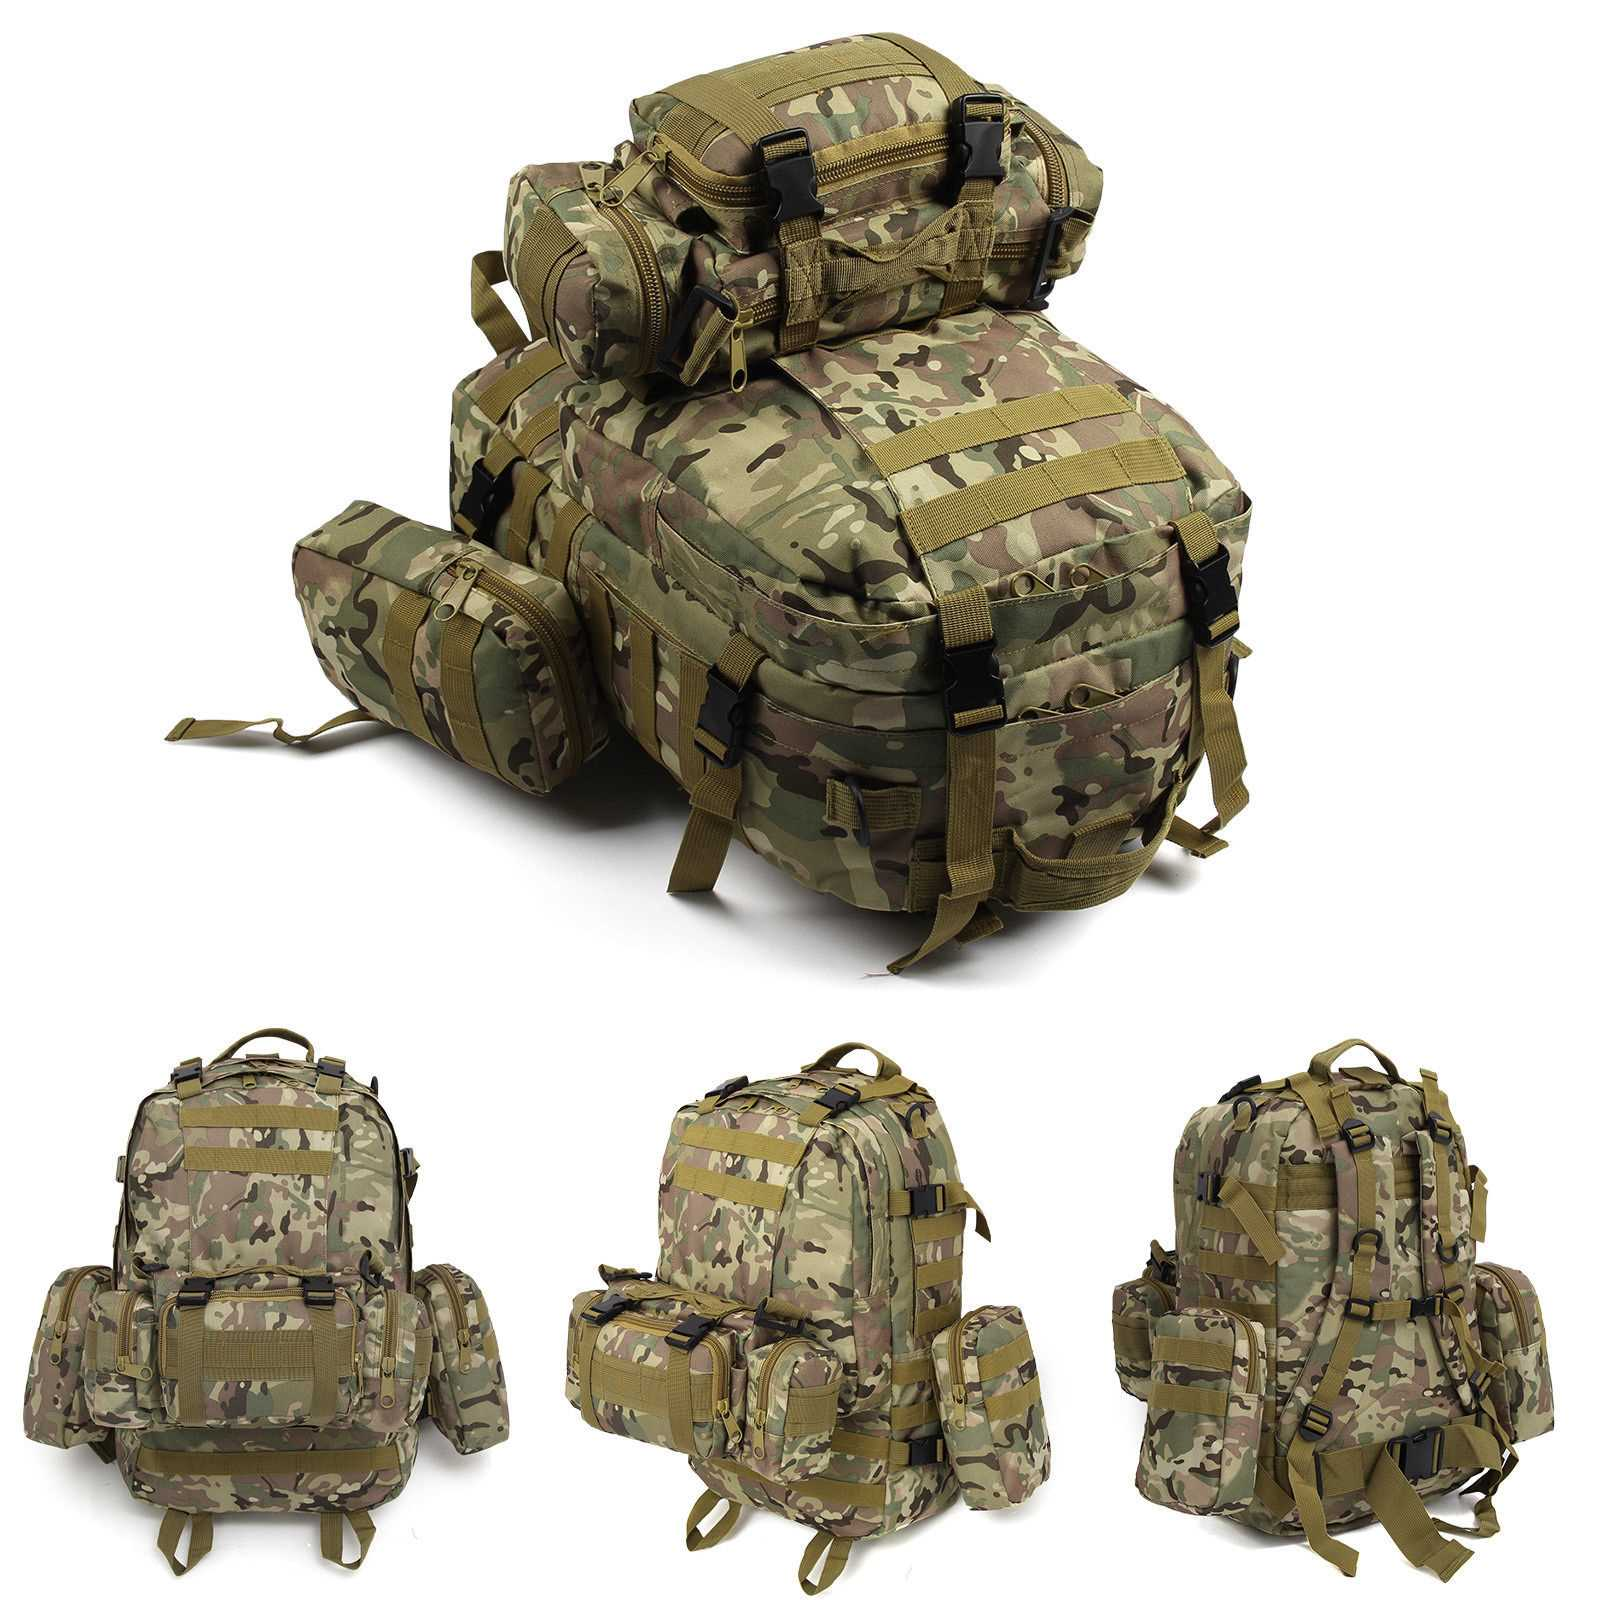 Camouflage 50L Modern Military Tactical Army Rucksacks Molle Backpack Camping Hiking Bag